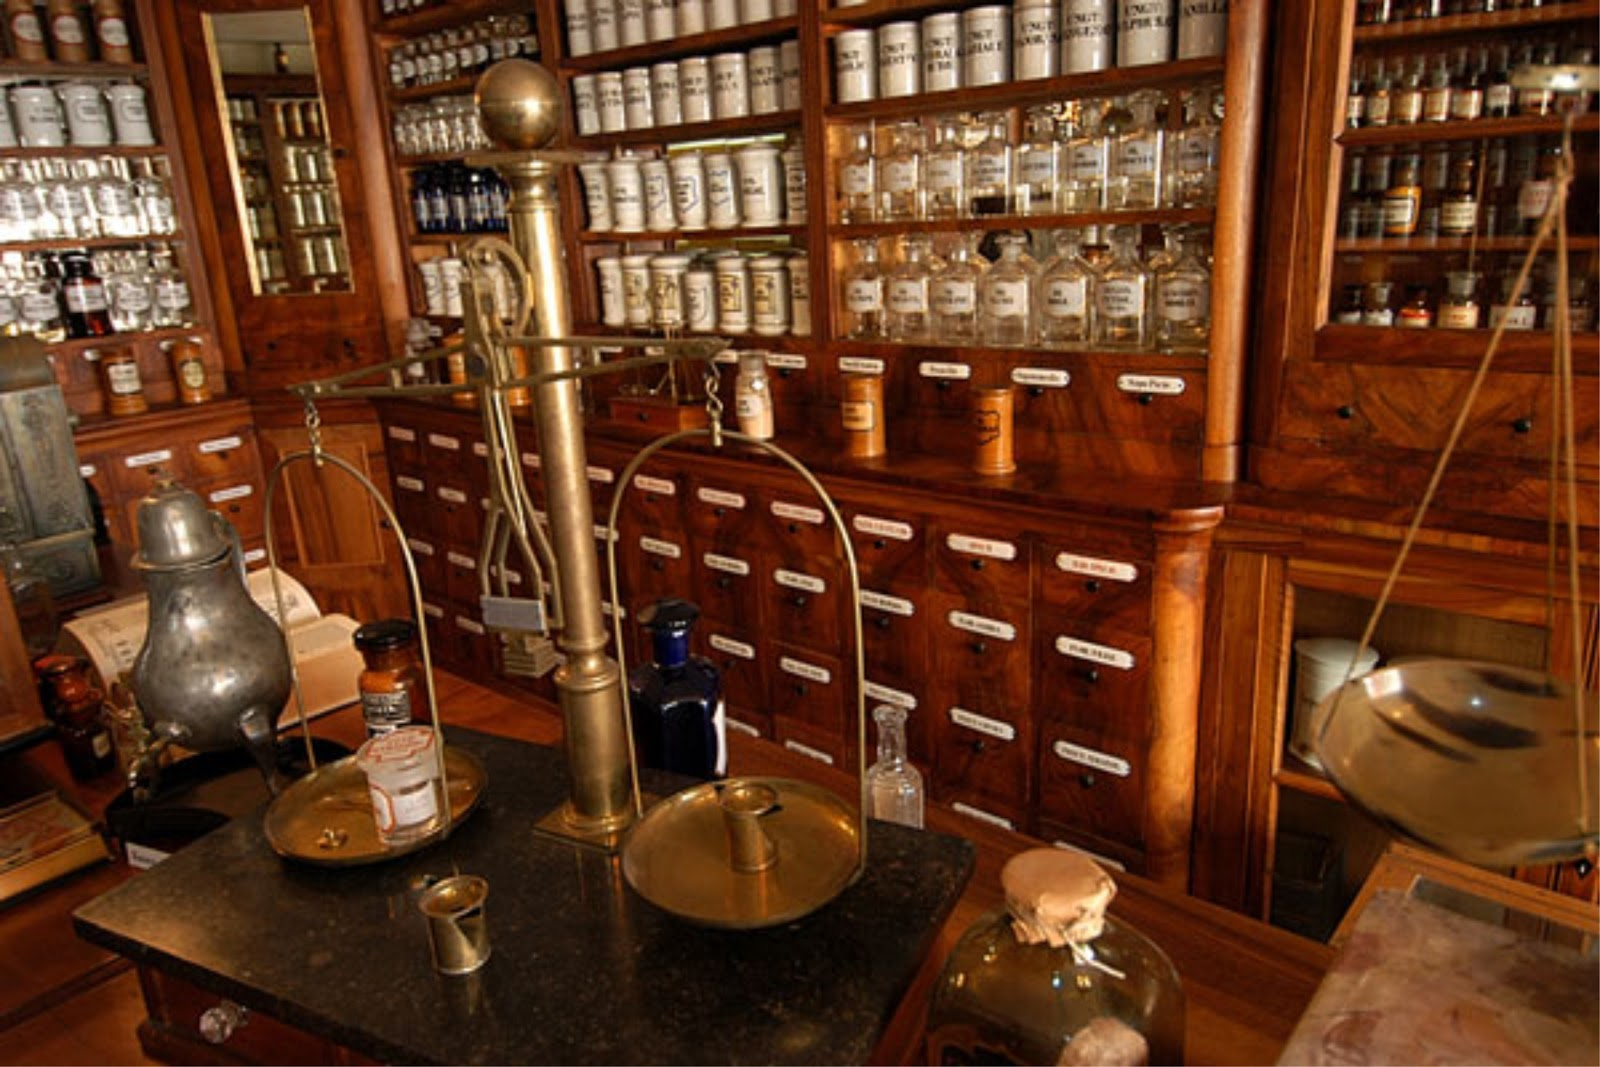 J Thaddeus Ozark's Cookie Jars And Other Larks Cabinets